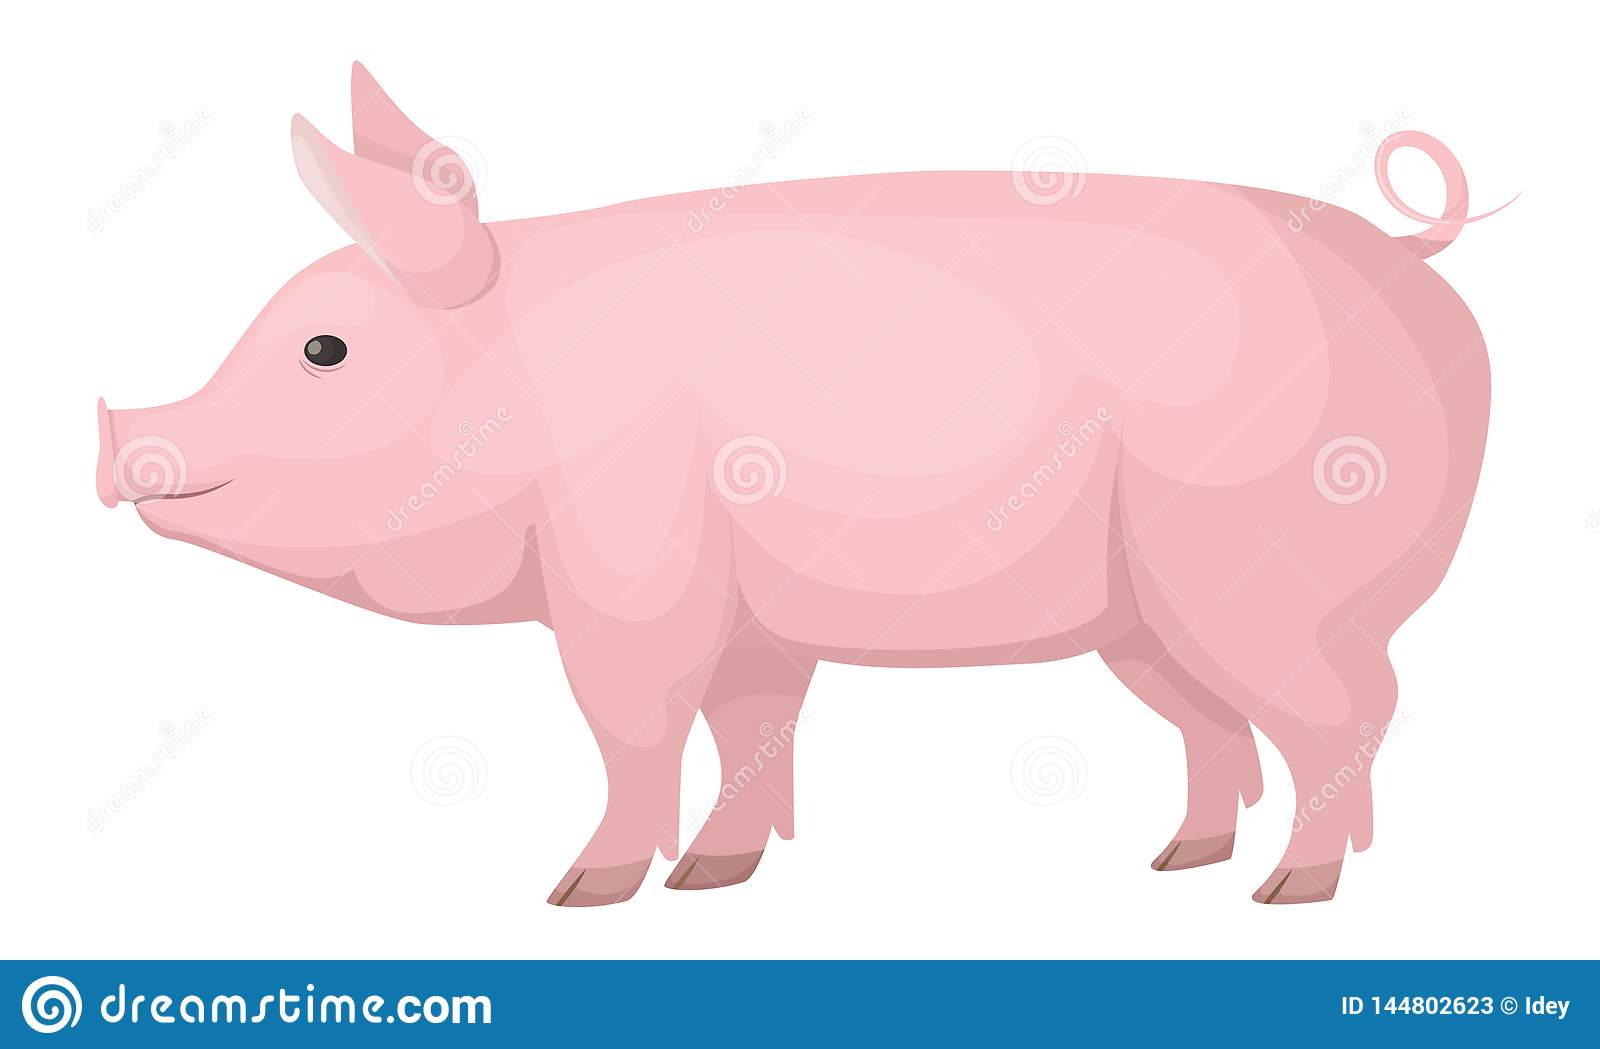 Farm Animals  Cute, Funny, Pink Domestic Pig, Medium Size